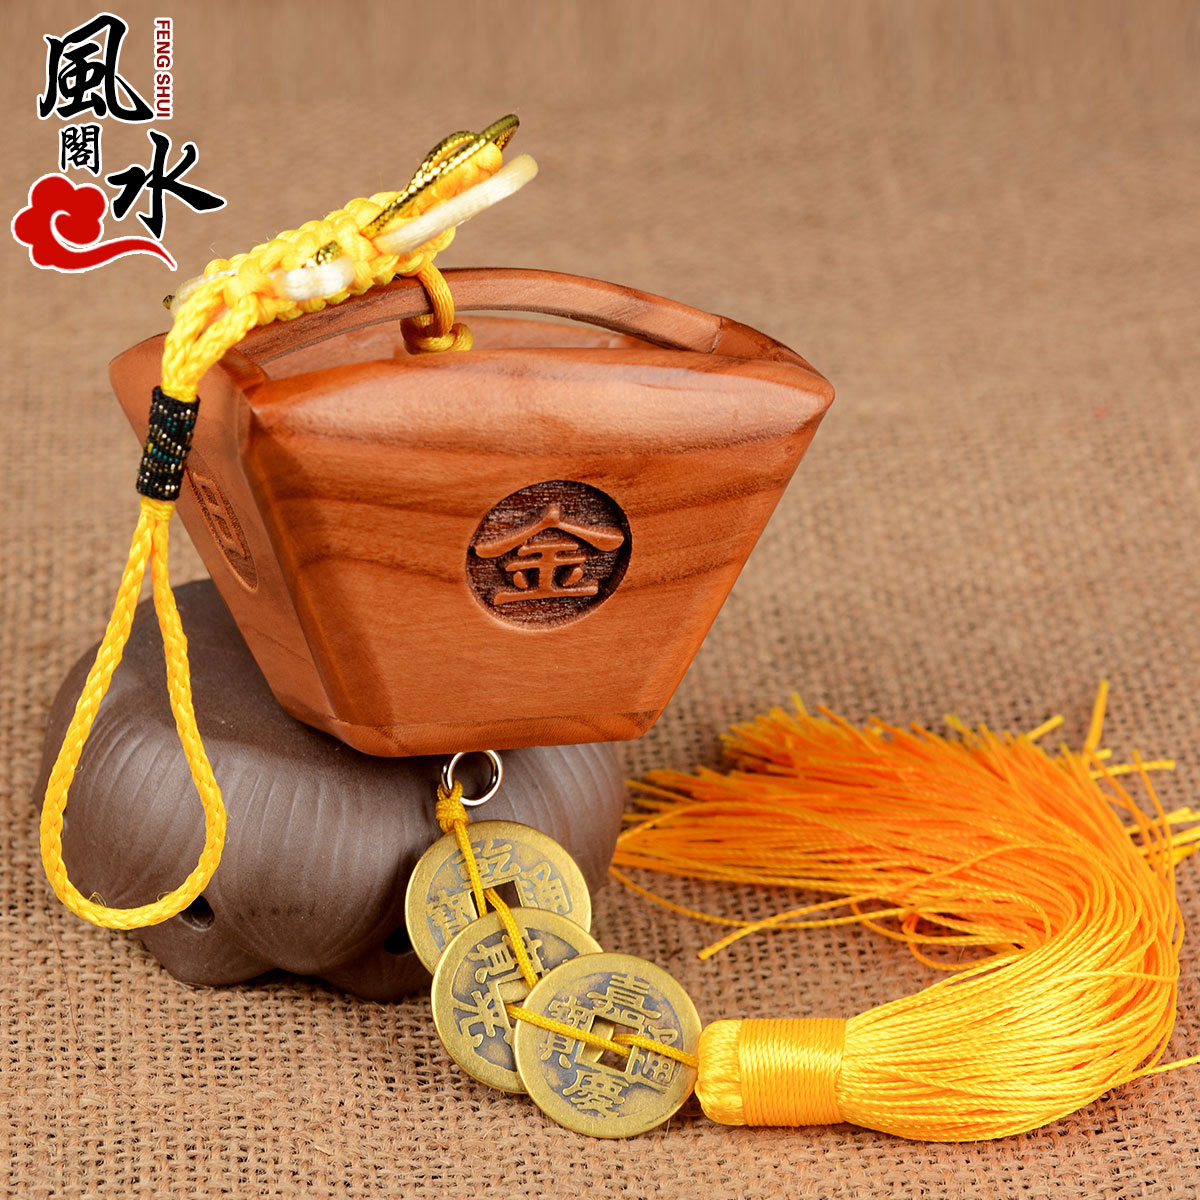 Feng shui court opening mahogany enrichment archaized rijindoujin m bucket bucket ornaments crafts opening gifts lucky